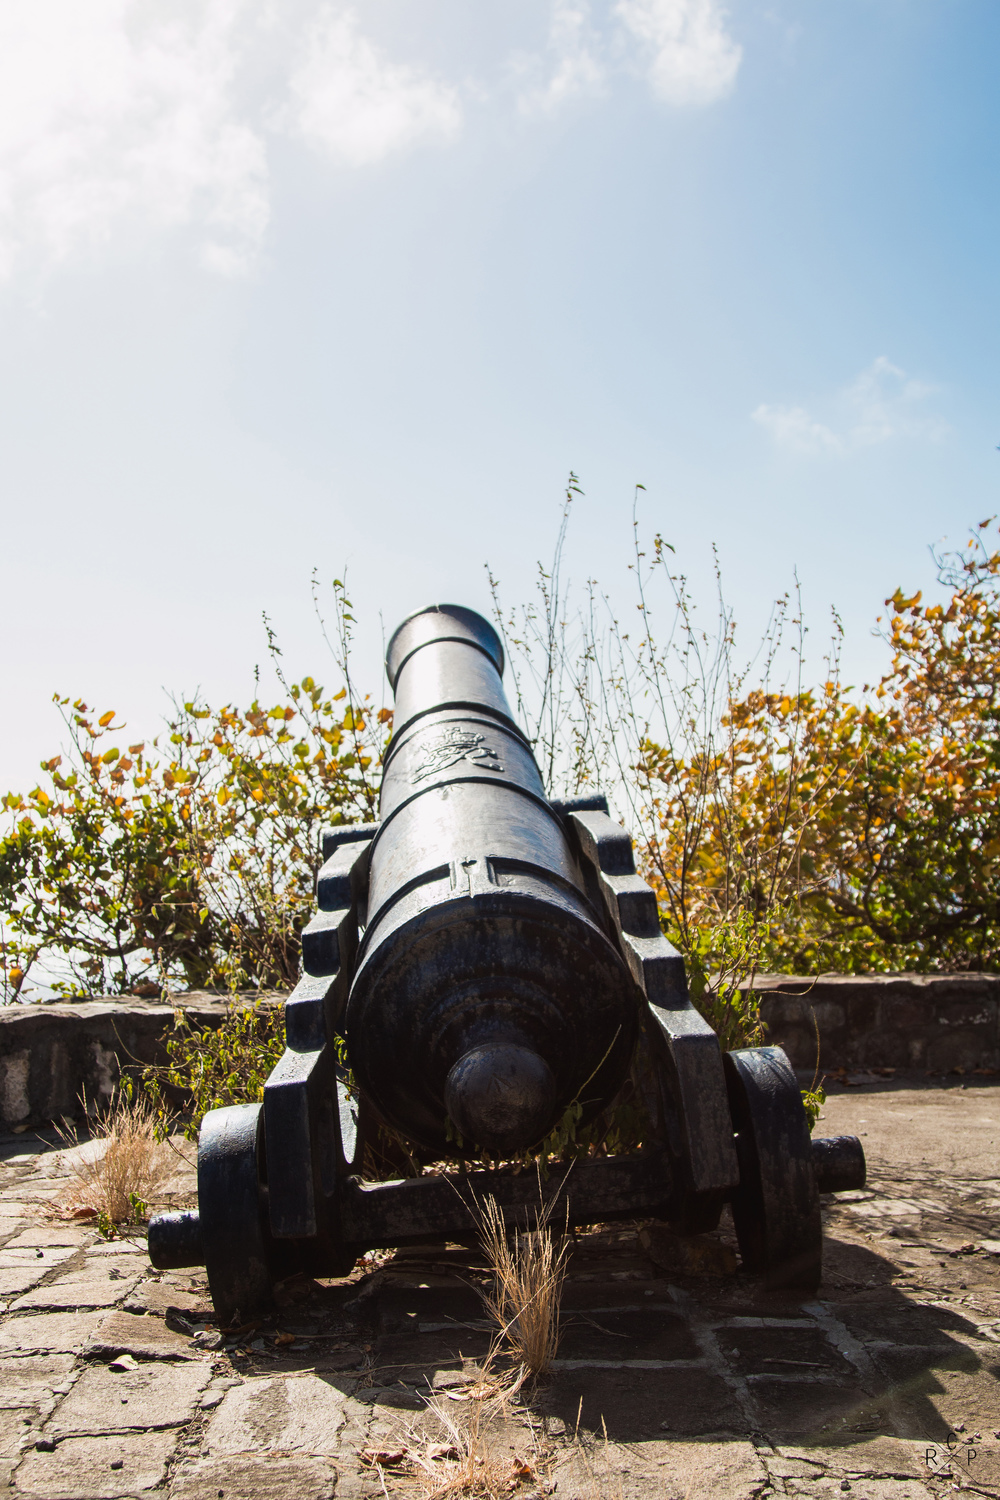 Cannon - Fort Duvernette, St. Vincent & The Grenadines 09/02/2016